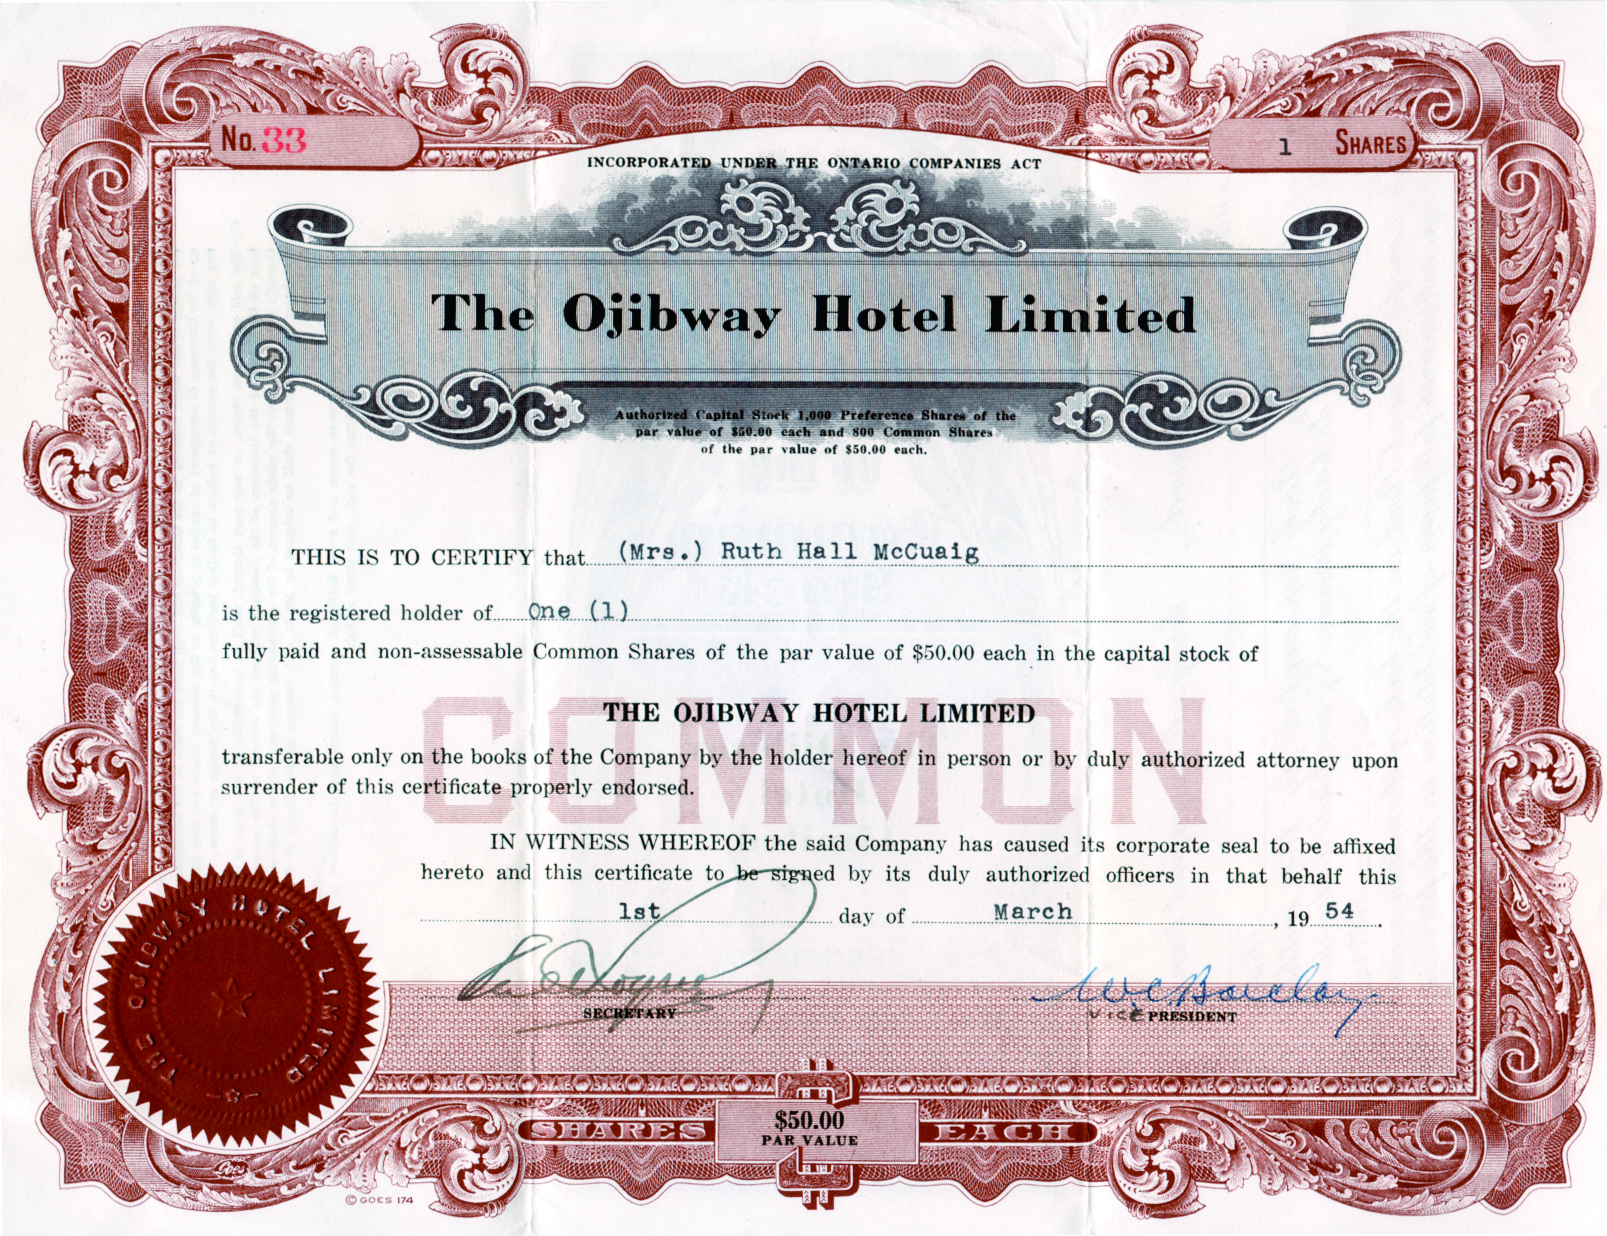 Throughout the 1940s and 1950s, shares were issued to finance the ongoing operations of the hotel. This had more to do with fundraising than with investment, for there were certainly more profitable ventures than a big old resort.  But the islanders wanted the Ojibway to continue to be run as always. None of the investors expected to make any money. And, as a matter of fact, they didn't.